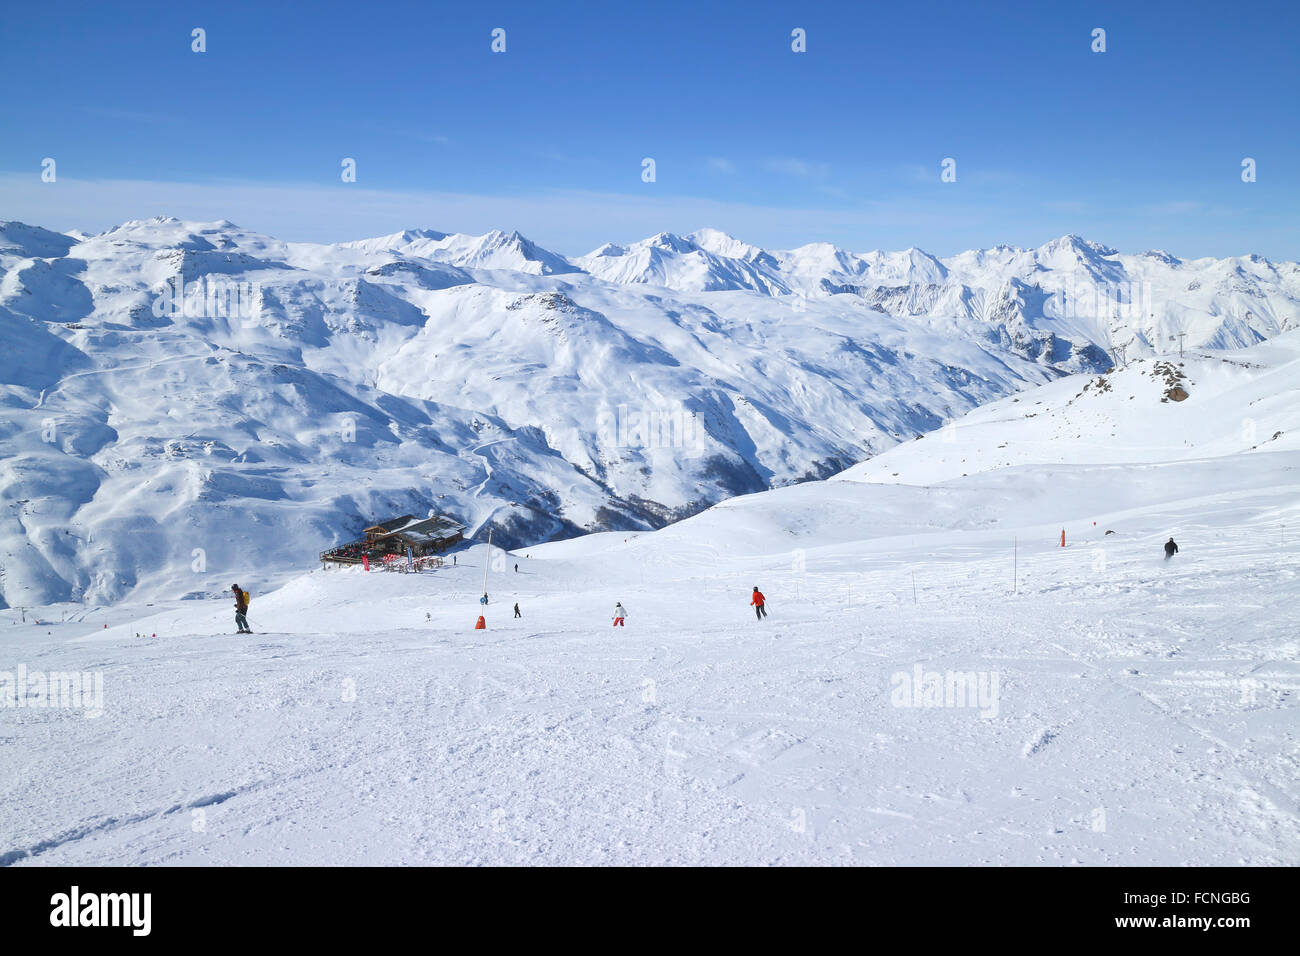 Skiers on ski slopes in high Alps resort of Three Valleys France, apres ski chalet, with snowy mountain peaks against Stock Photo